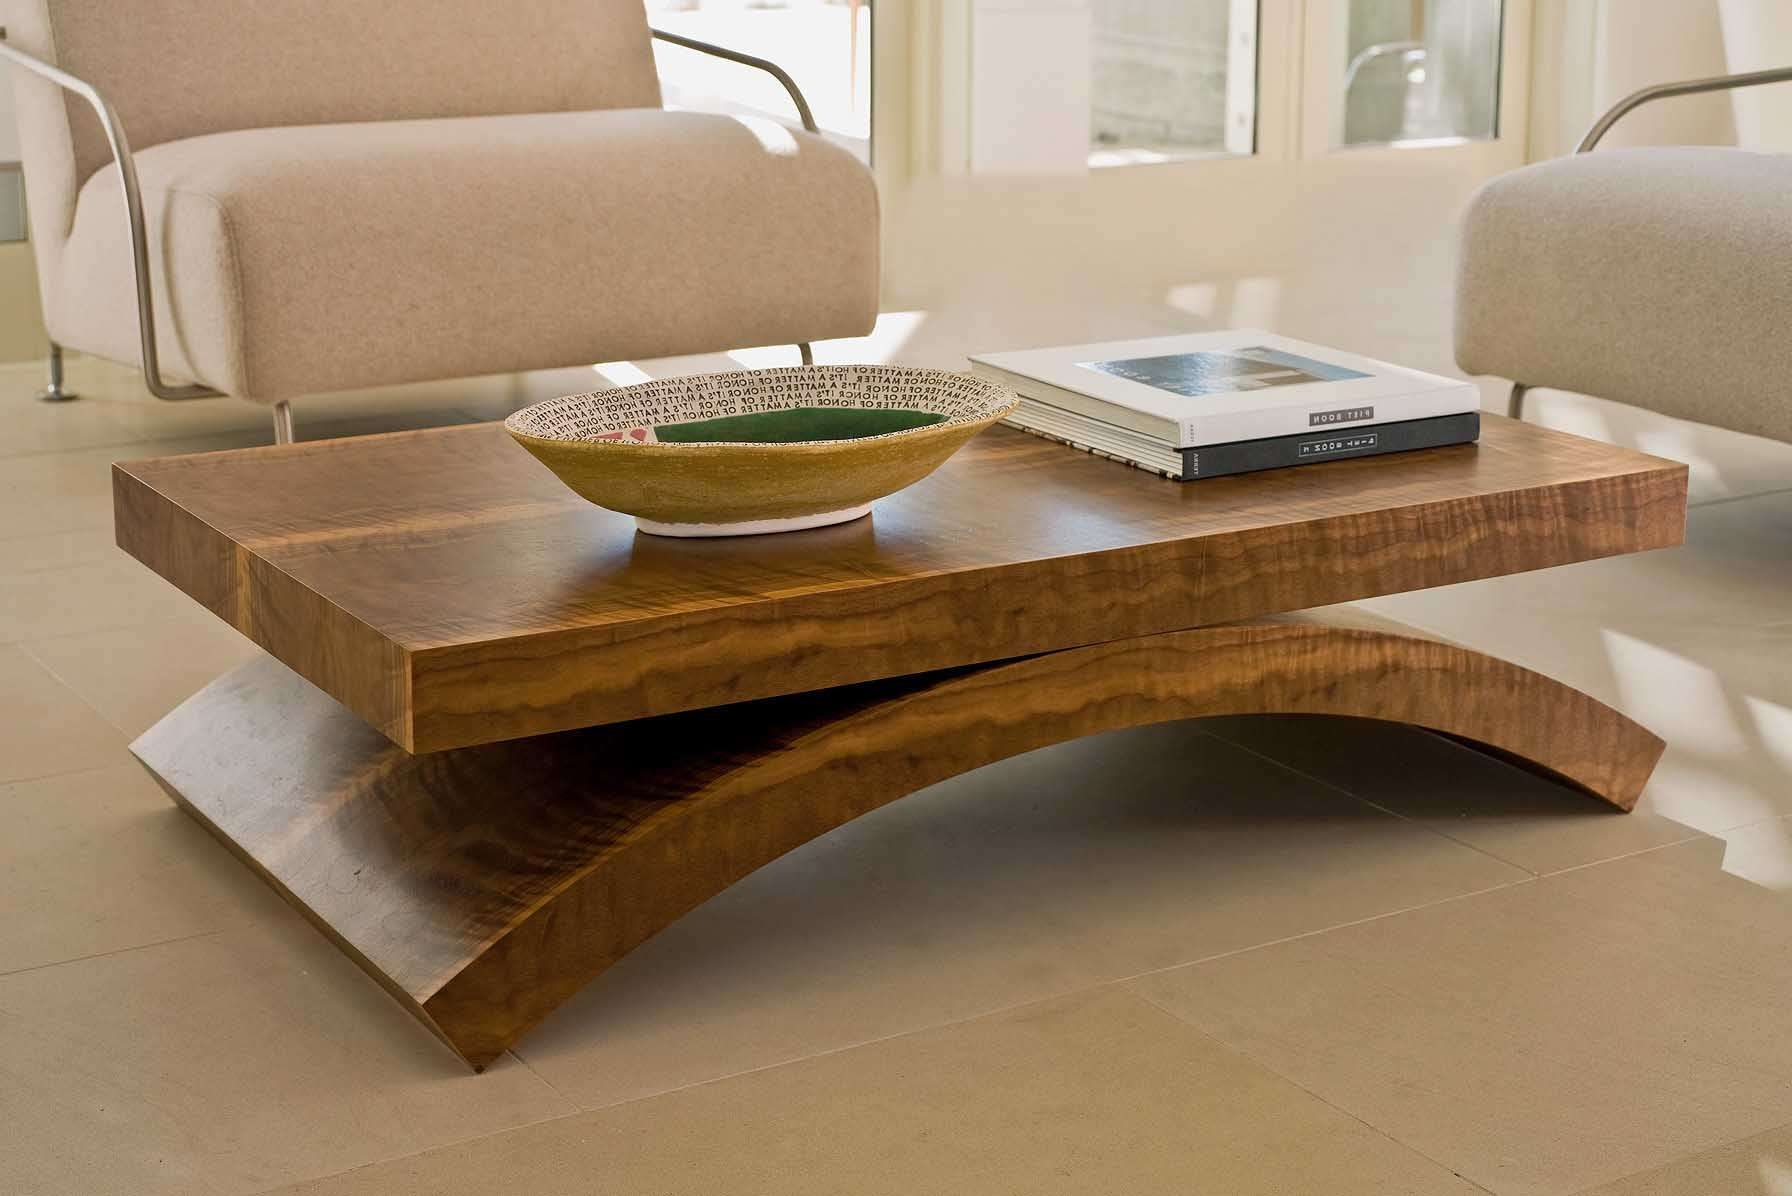 Preferred Nice Coffee Tables Intended For Coffee Tables : White Round Coffee Table Beautiful Washed Coastal (View 3 of 20)